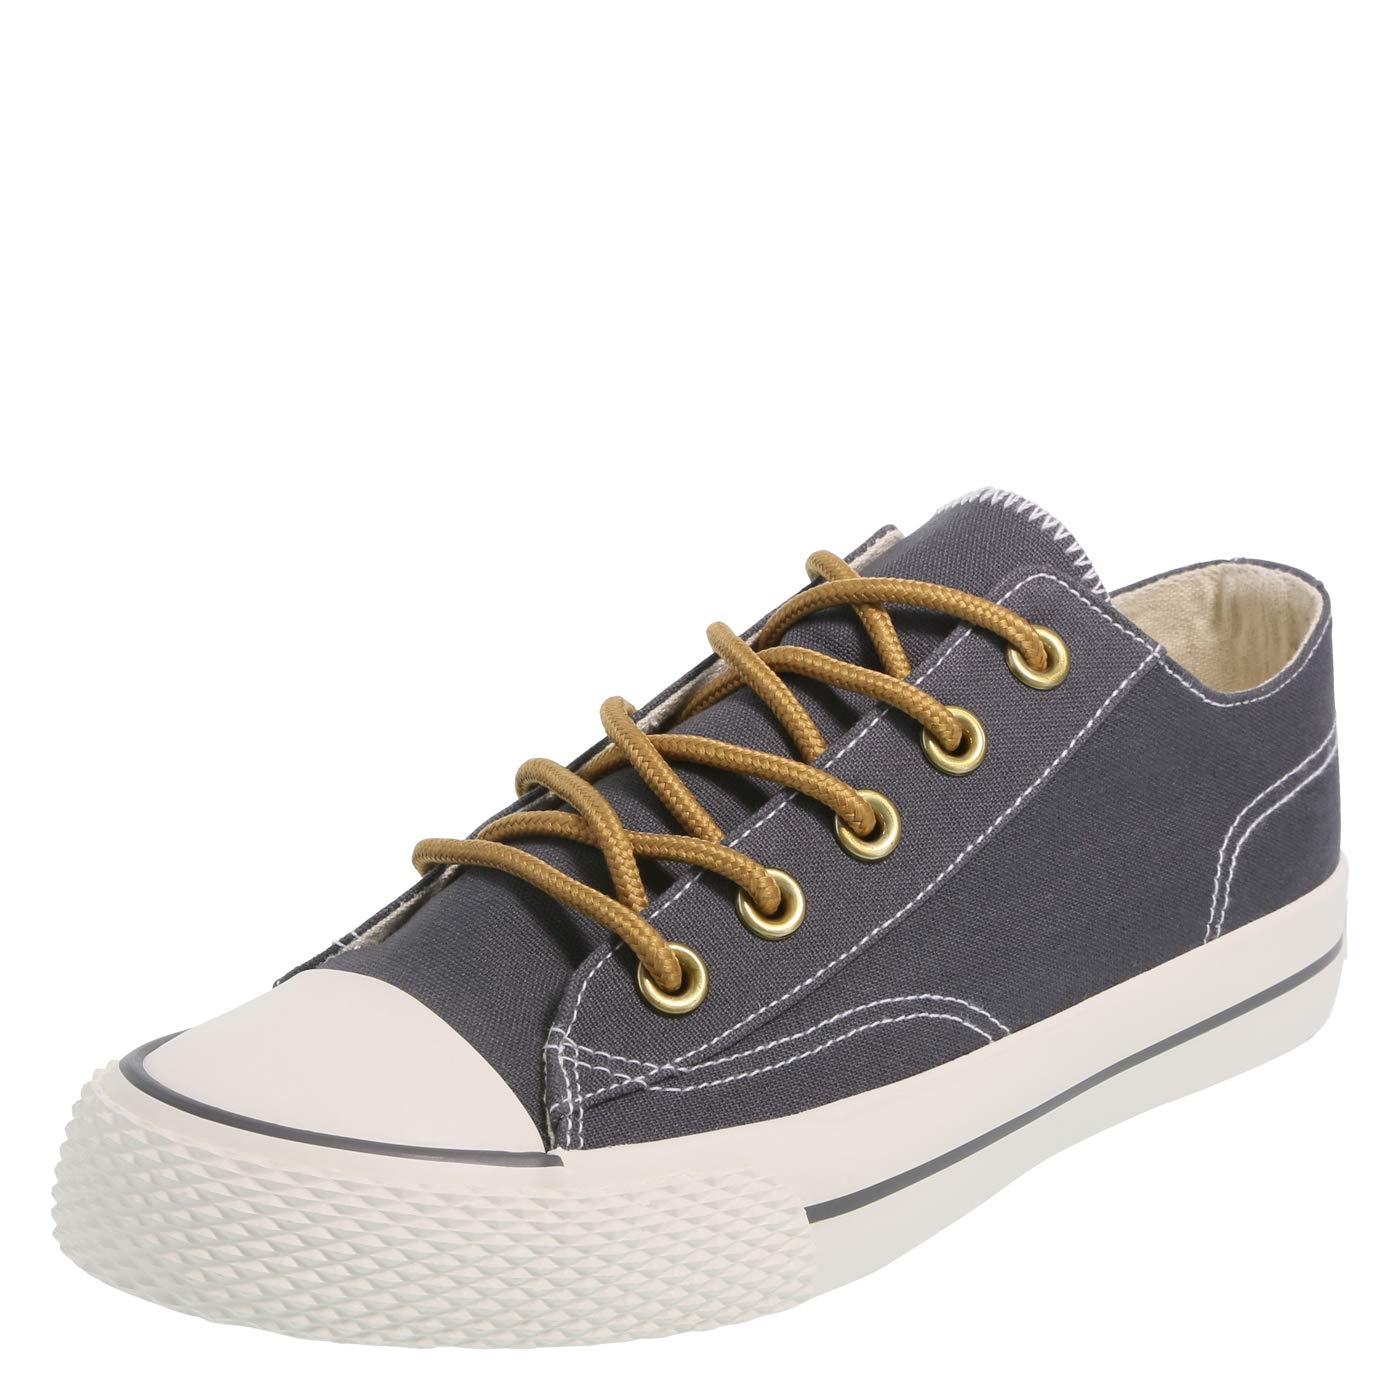 d28504c9994c Galleon - Airwalk Navy Canvas Women s Legacee Sneaker 6.5 Regular